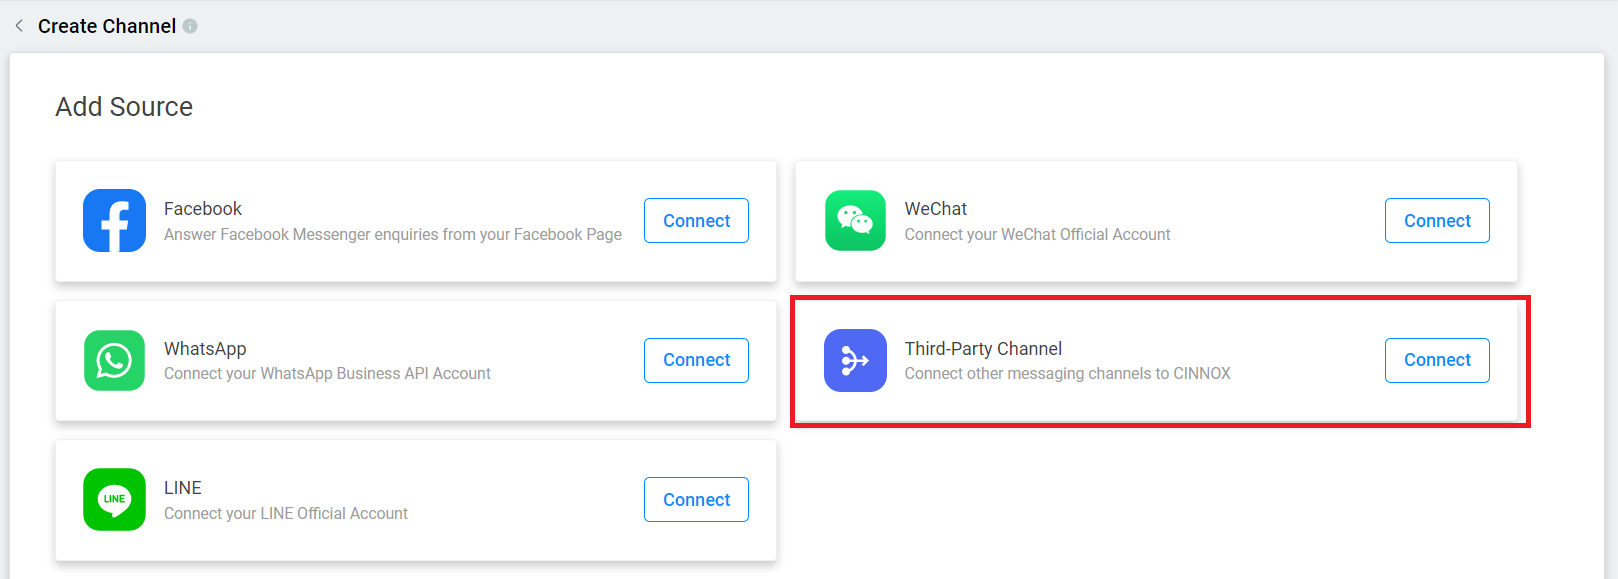 Selecting Third-Party Channel